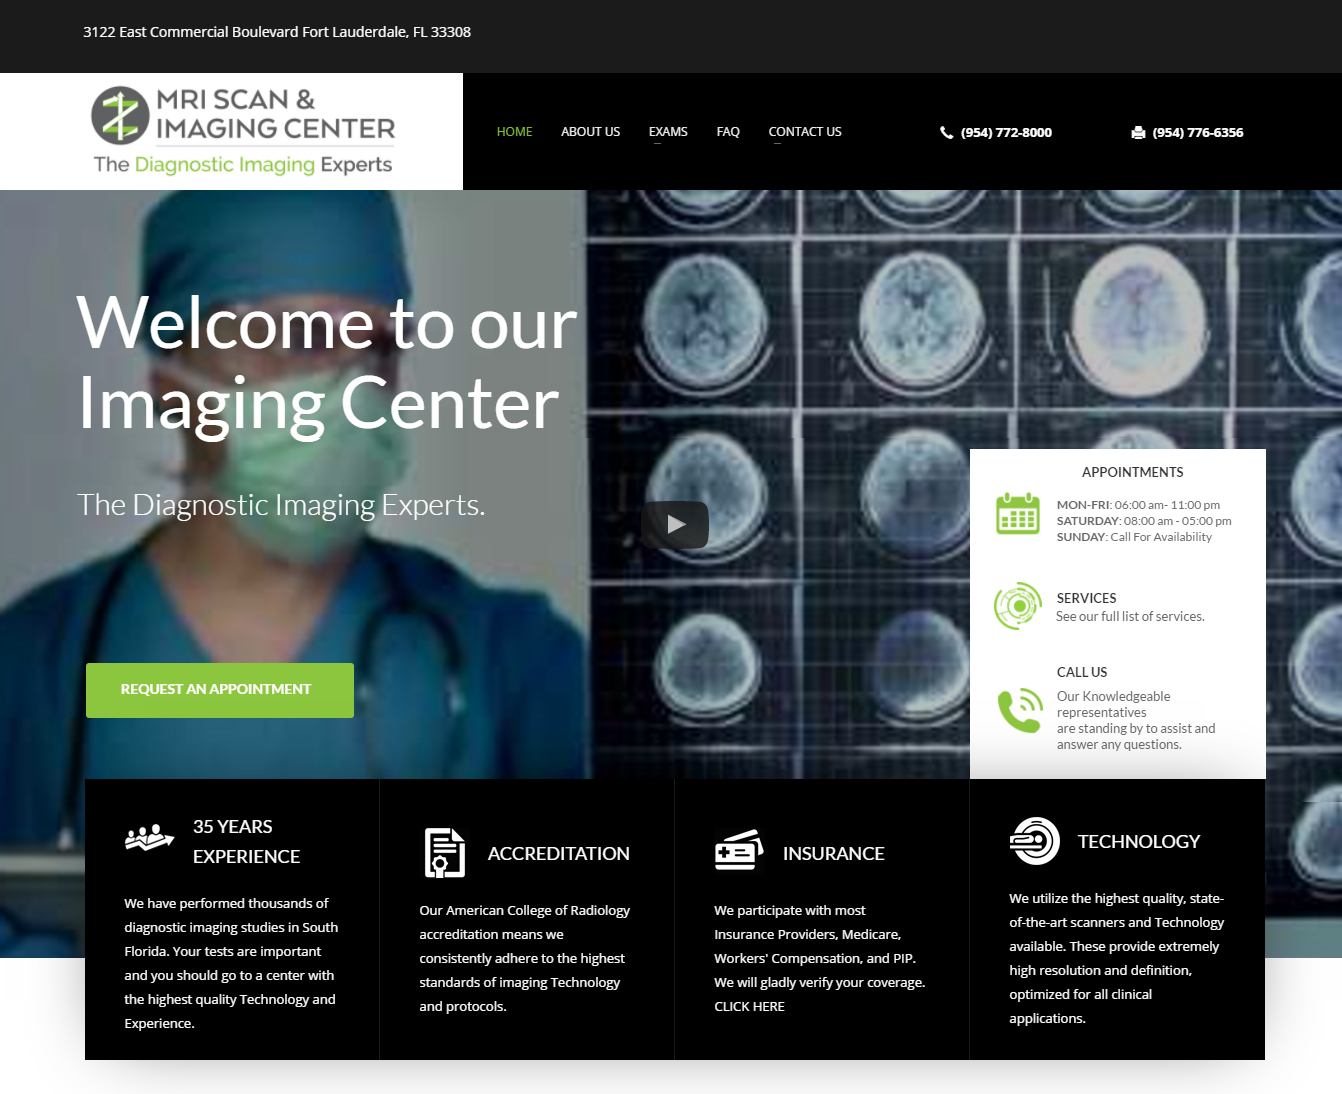 THE DIAGNOSTIC IMAGING EXPERTS